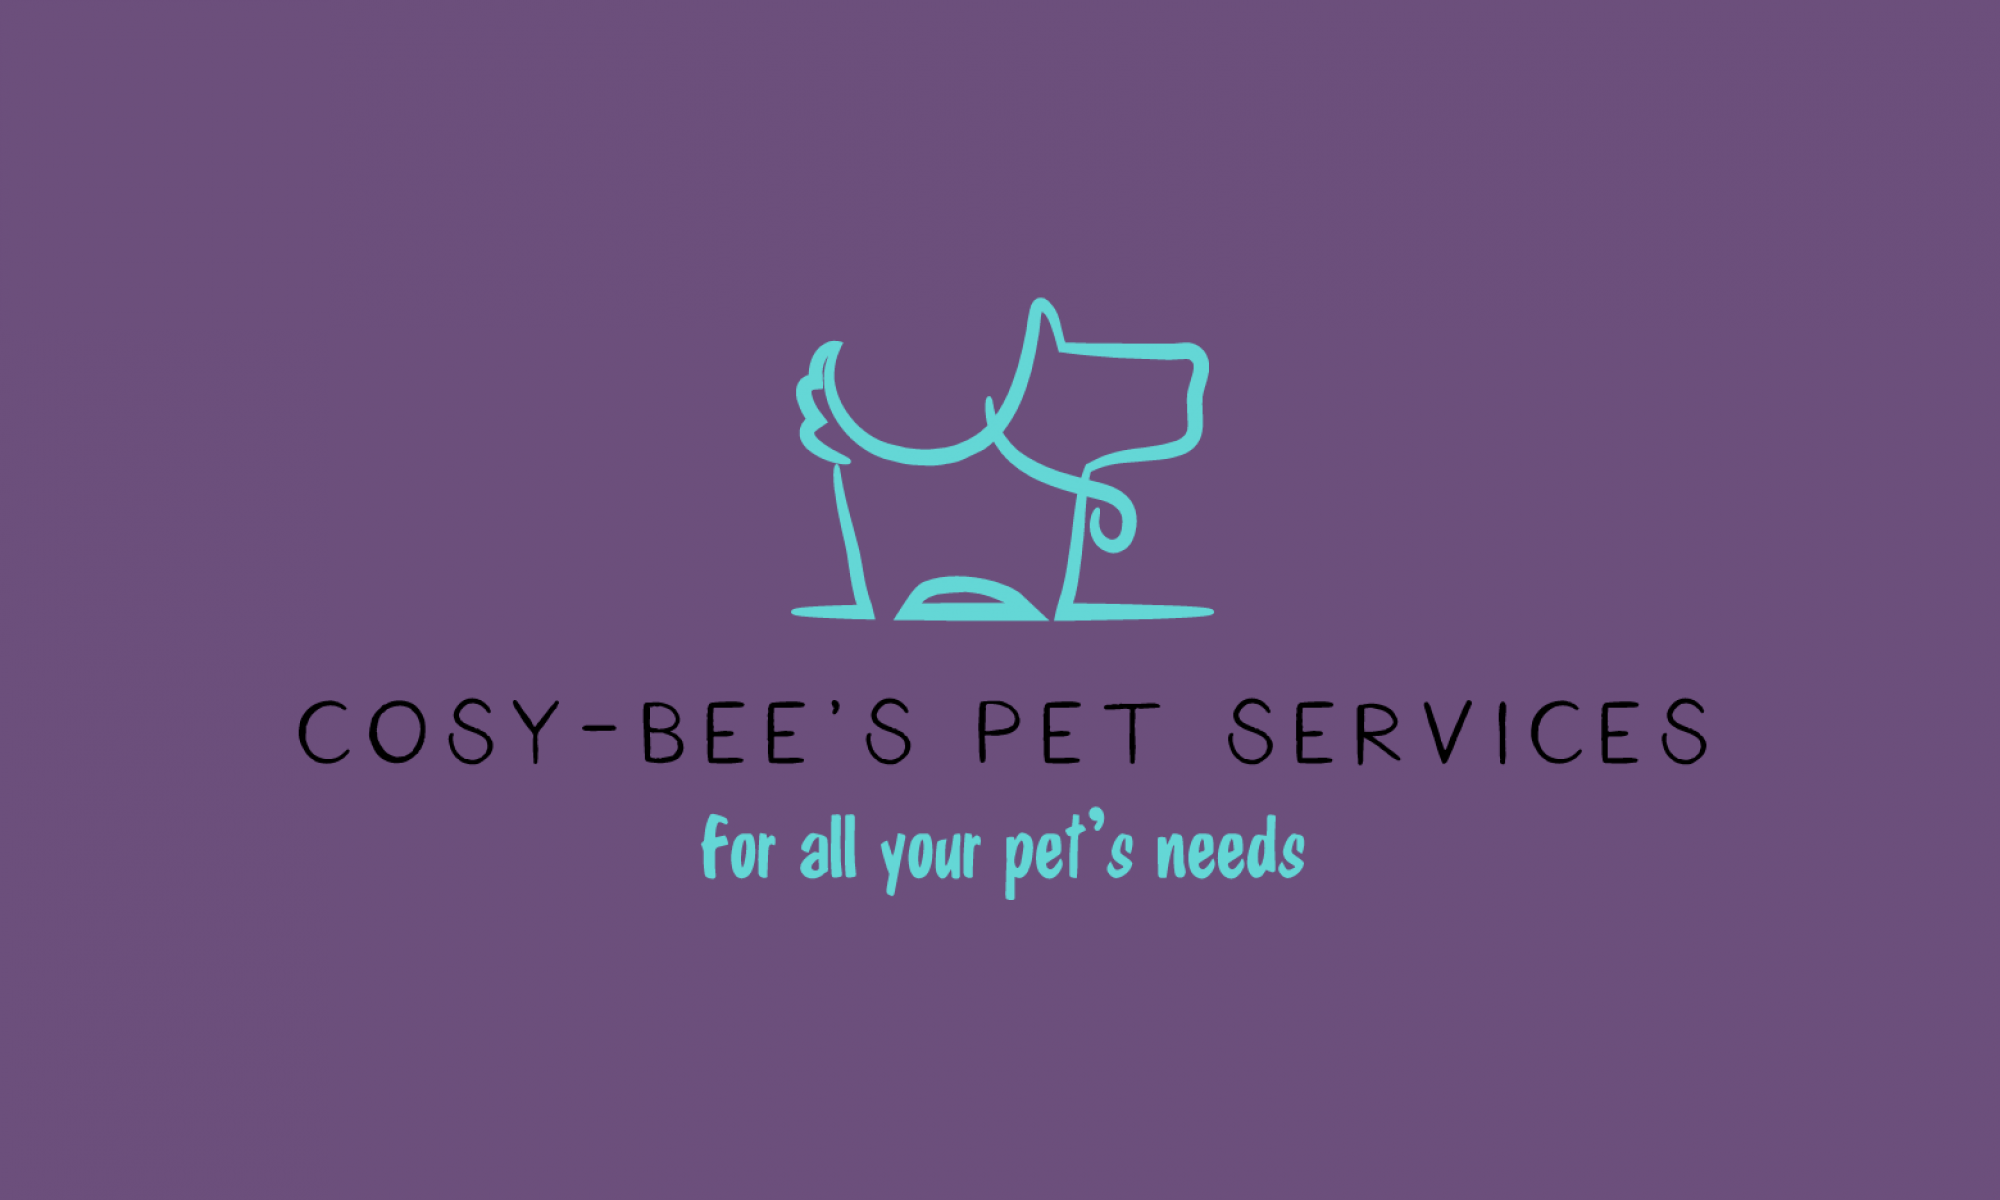 Cosy-Bee's Pet Services